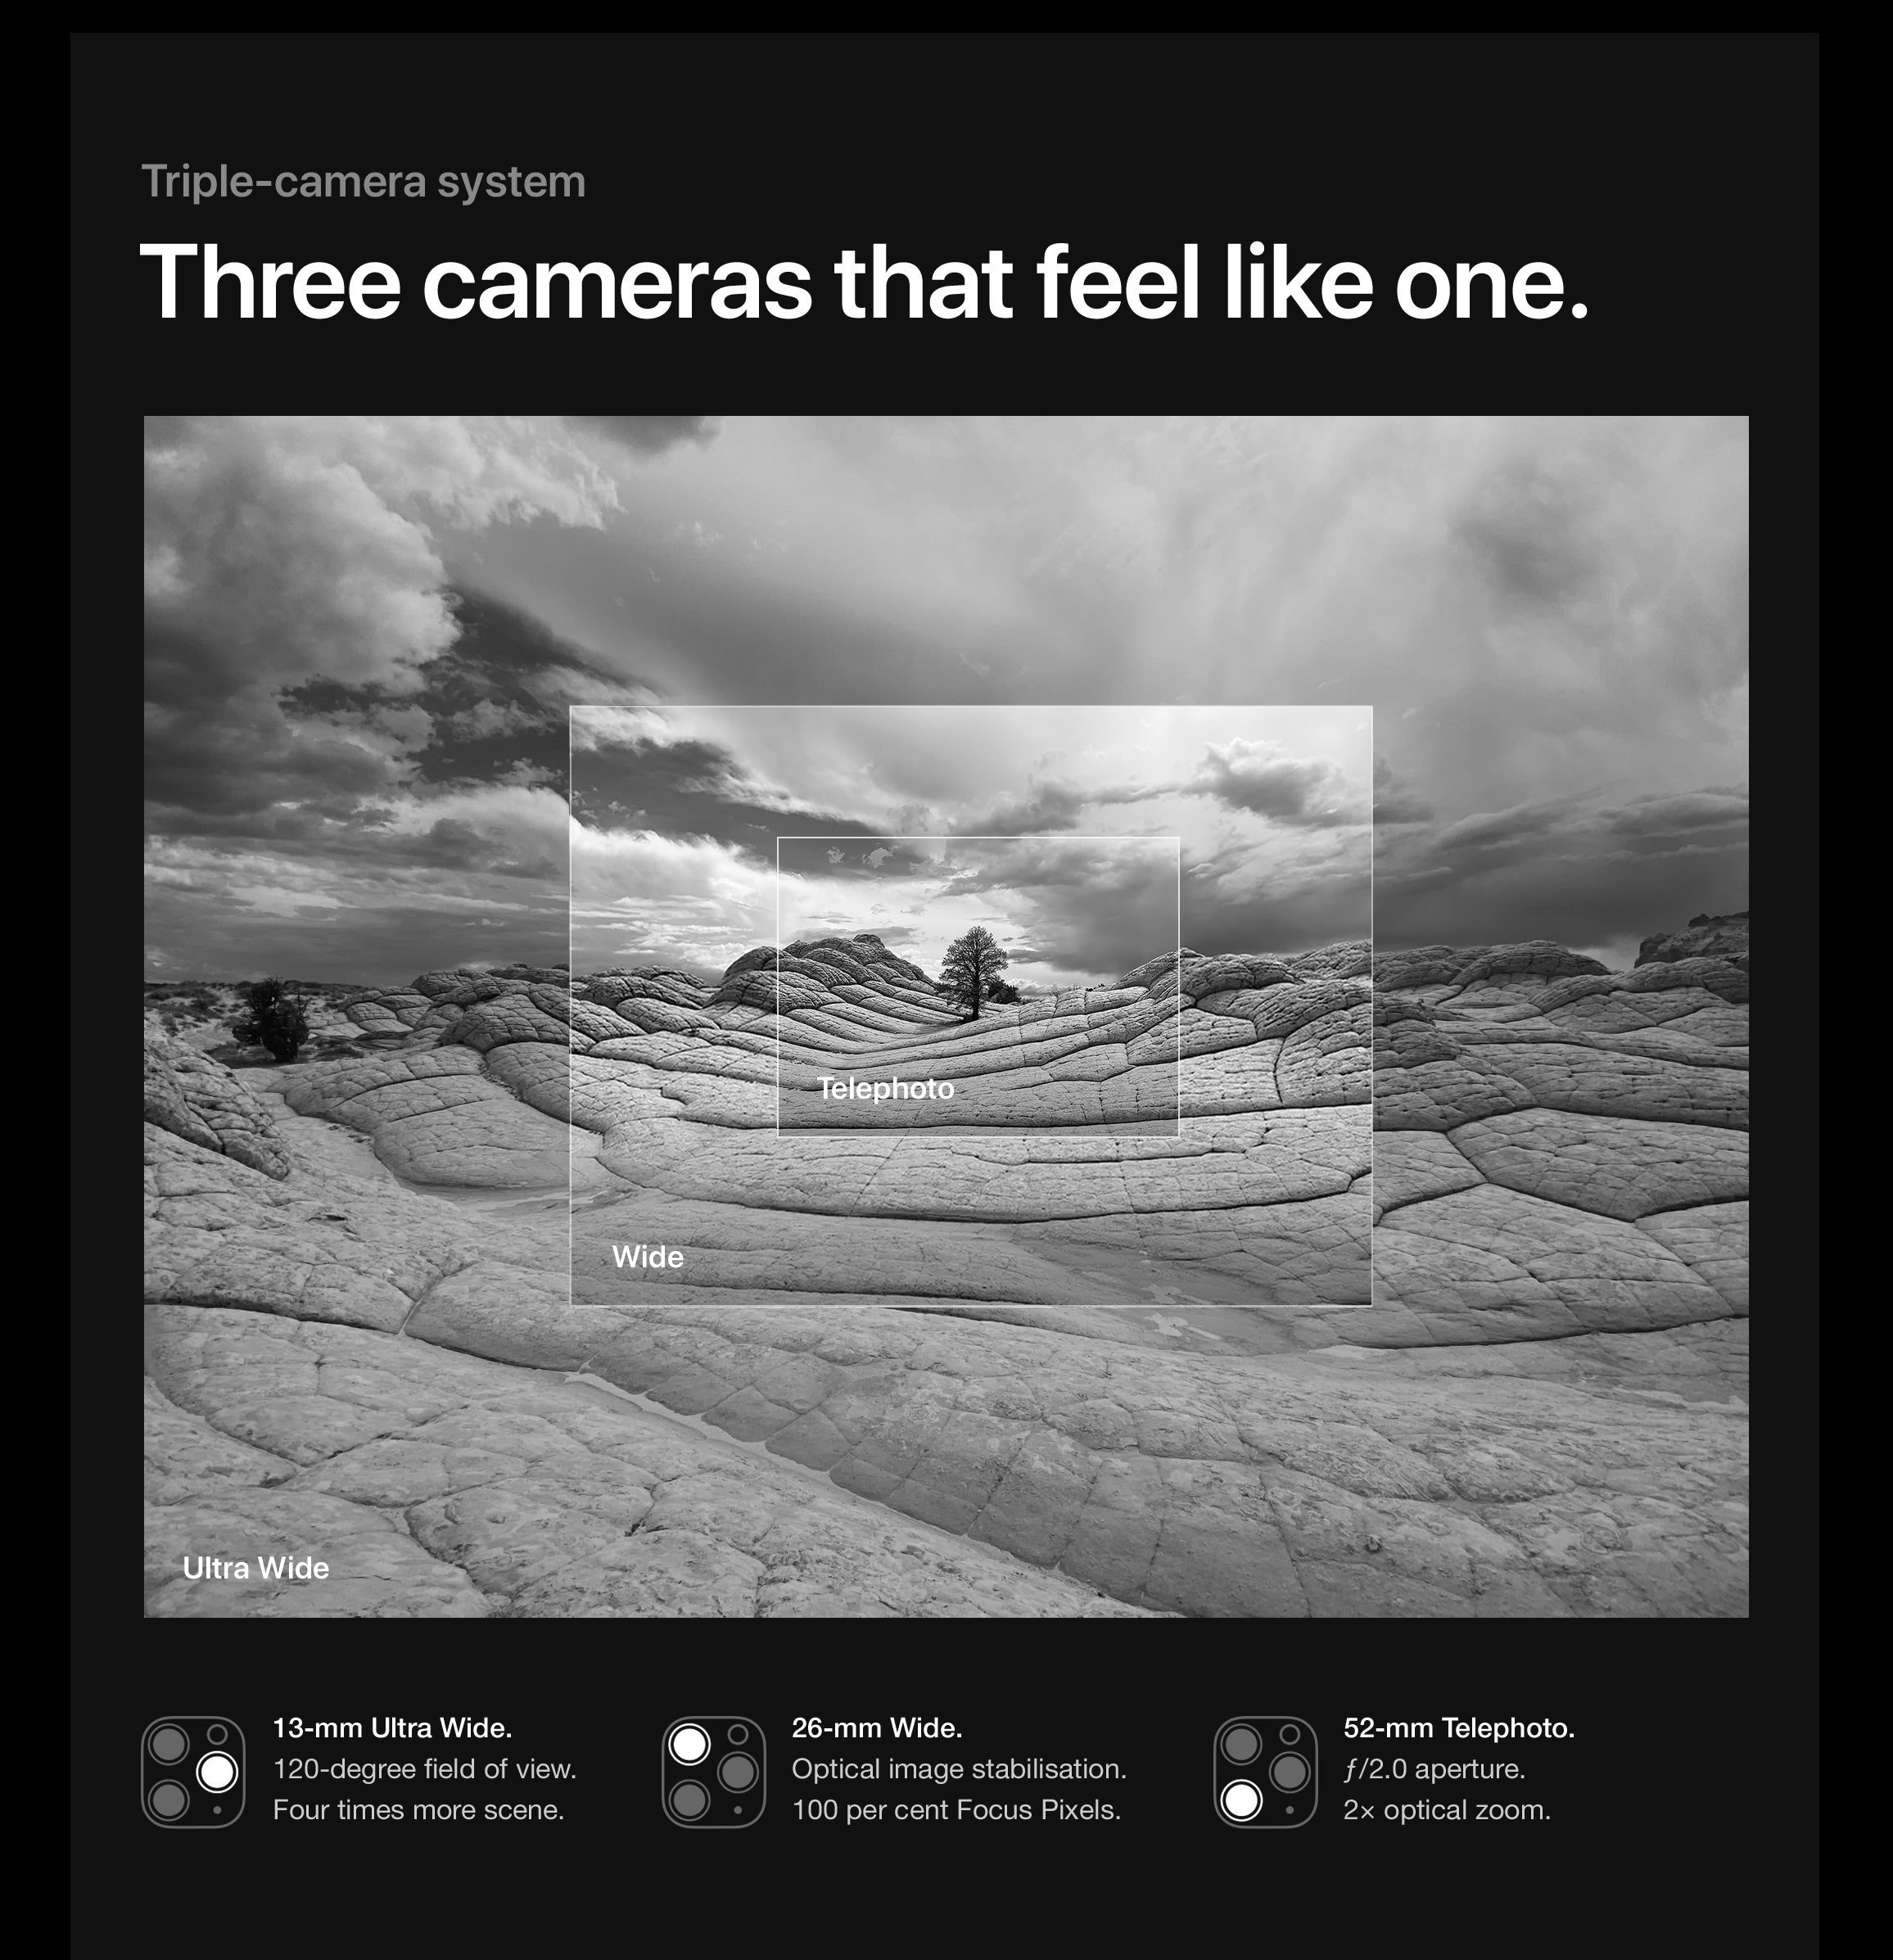 Triple-camera system Three cameras that feel like one.  4k video - The highest-quality video in a smartphone. Shoot 4K video with extended dynamic range at 60 fps. Capture four times more scene. And edit with new tools like rotate, crop and filters.